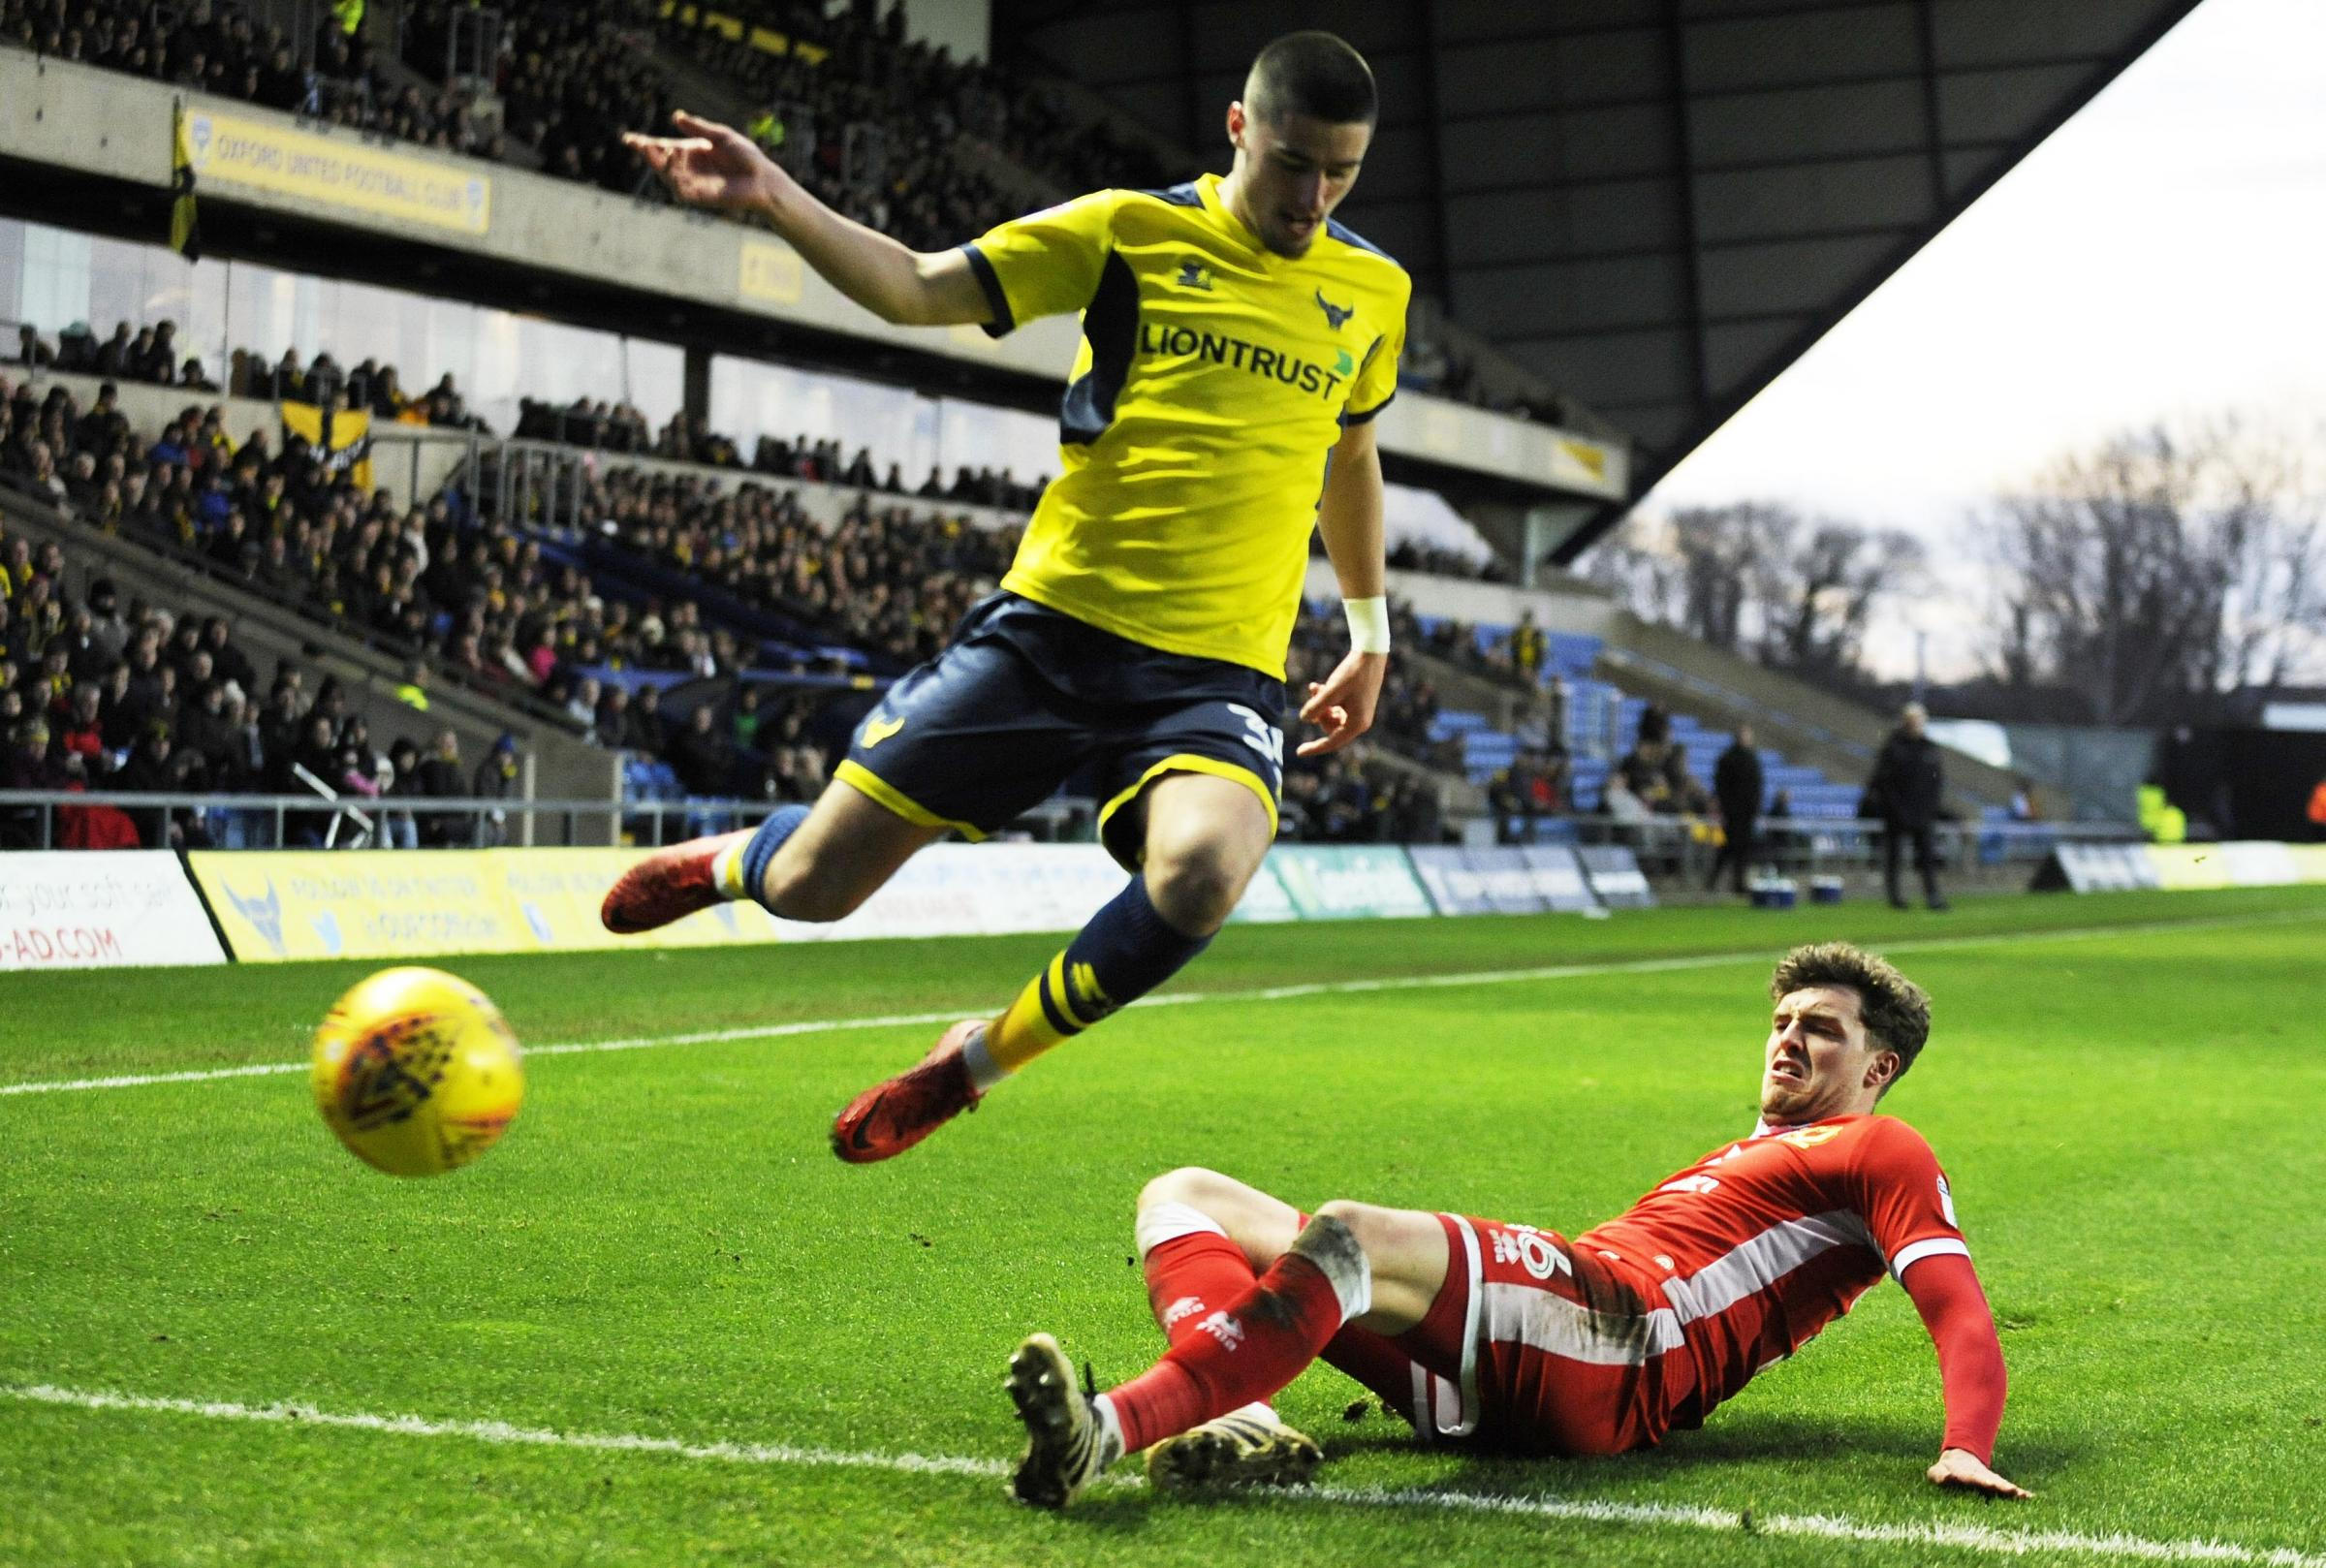 FLYING HIGH: Canice Carroll is set to start for the sixth U's game in a row Picture: David Fleming